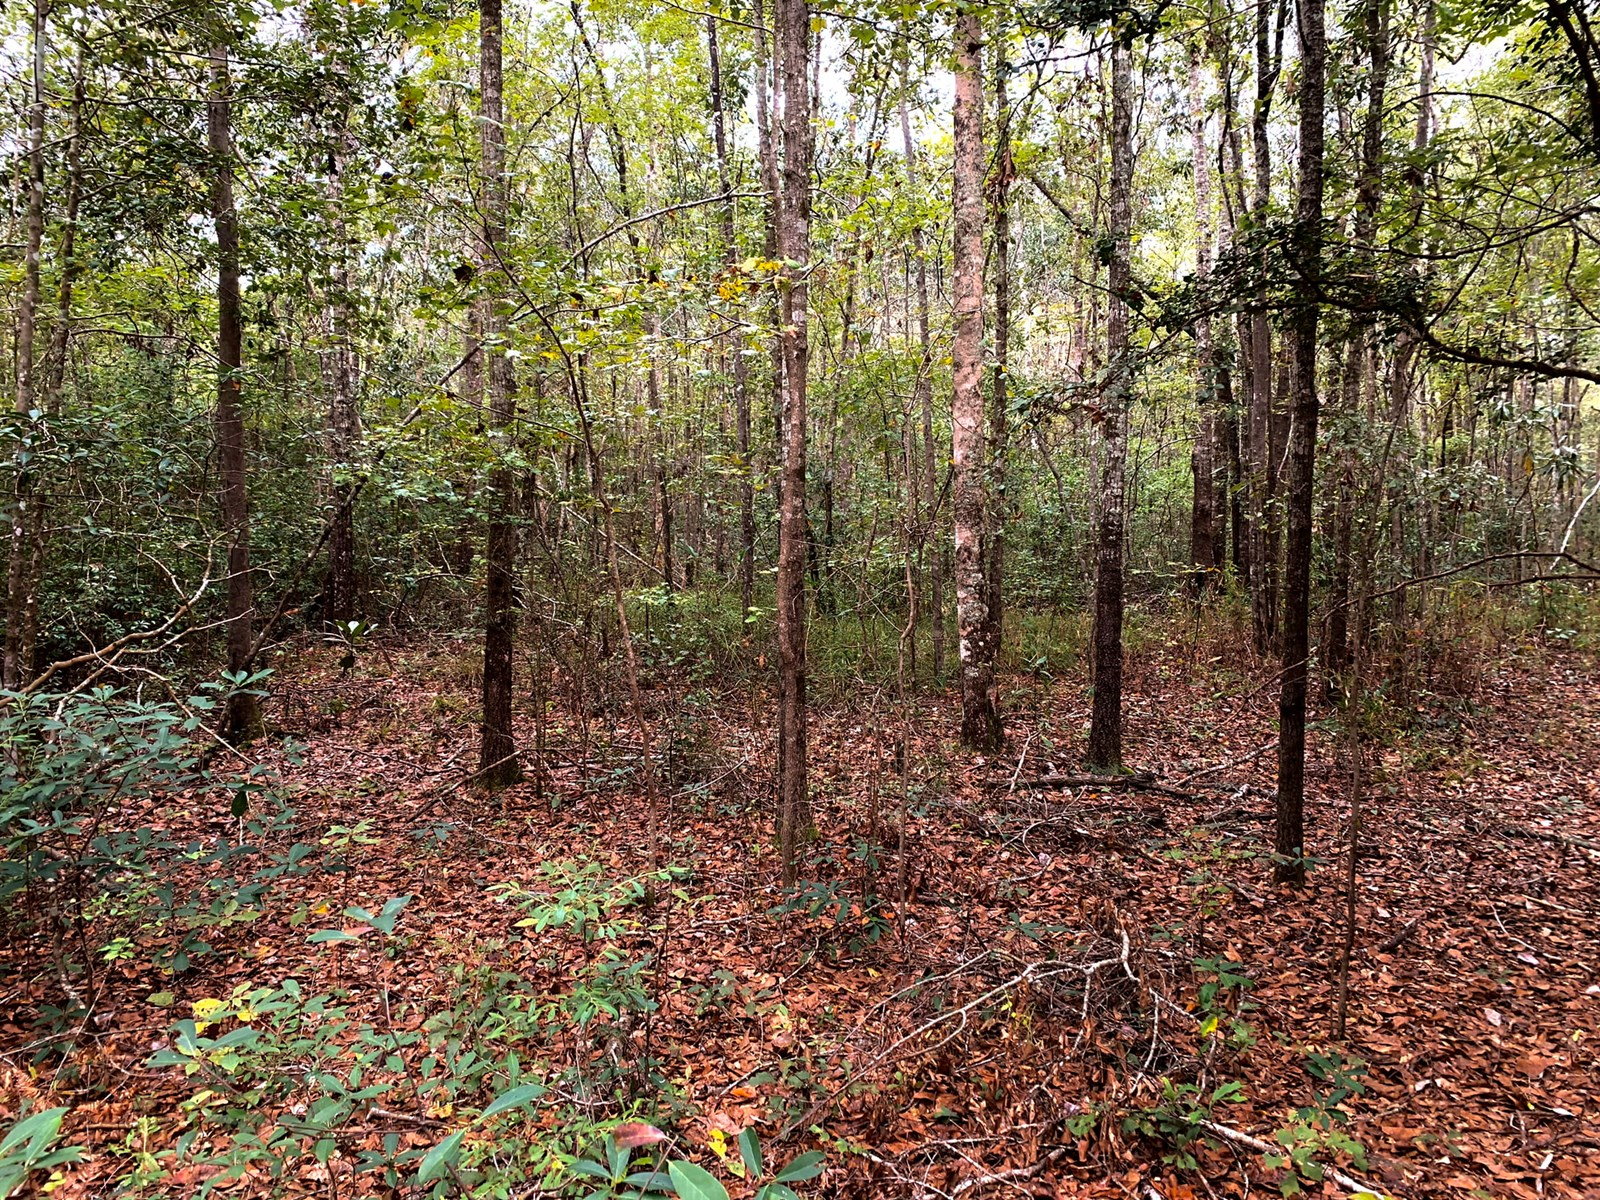 34 ACRES FOR SALE MALVERN, ALABAMA